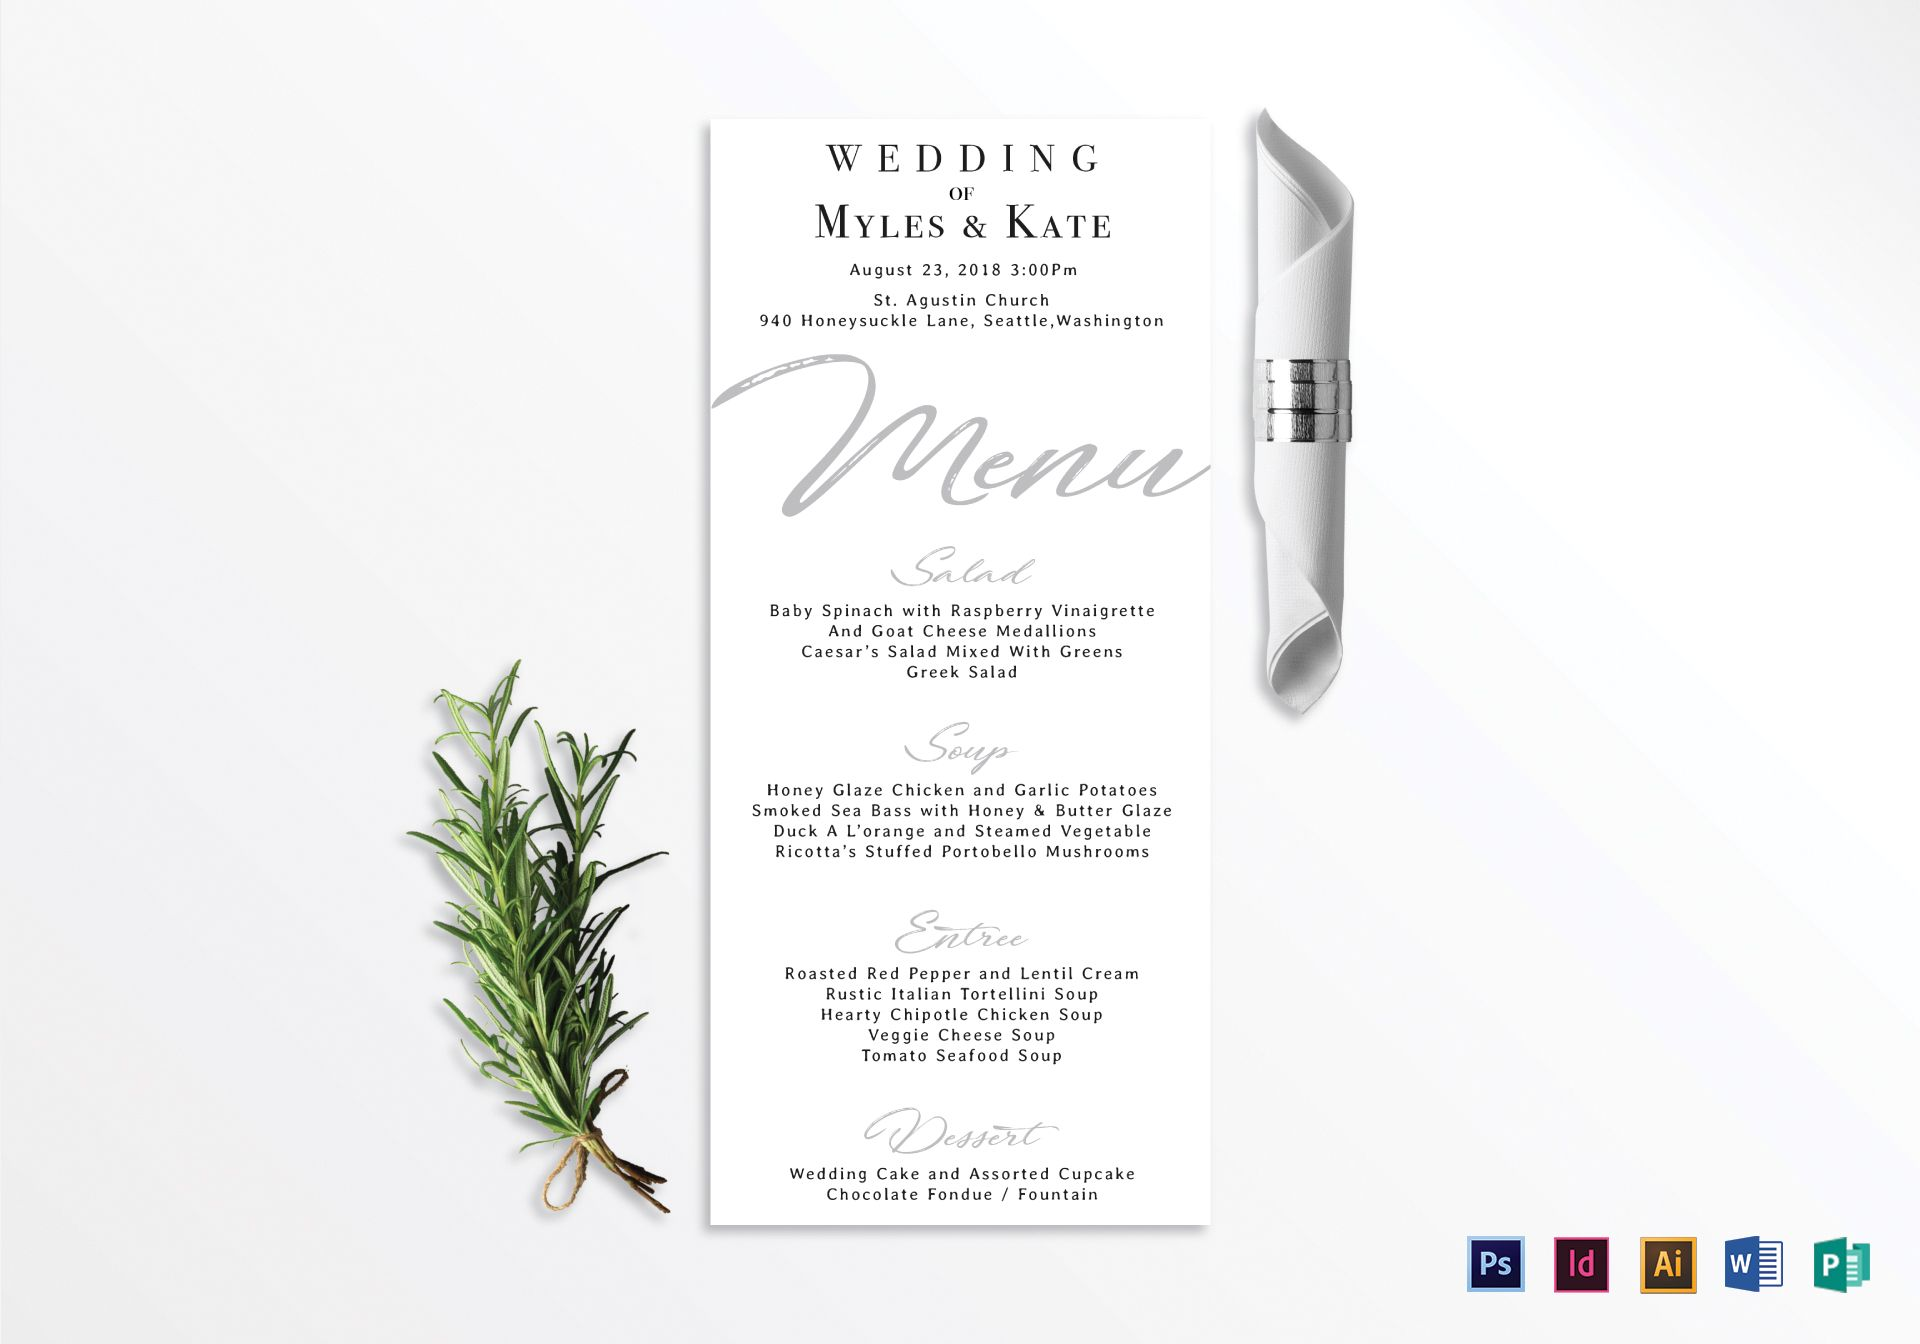 wedding menu card design template in psd  word  publisher